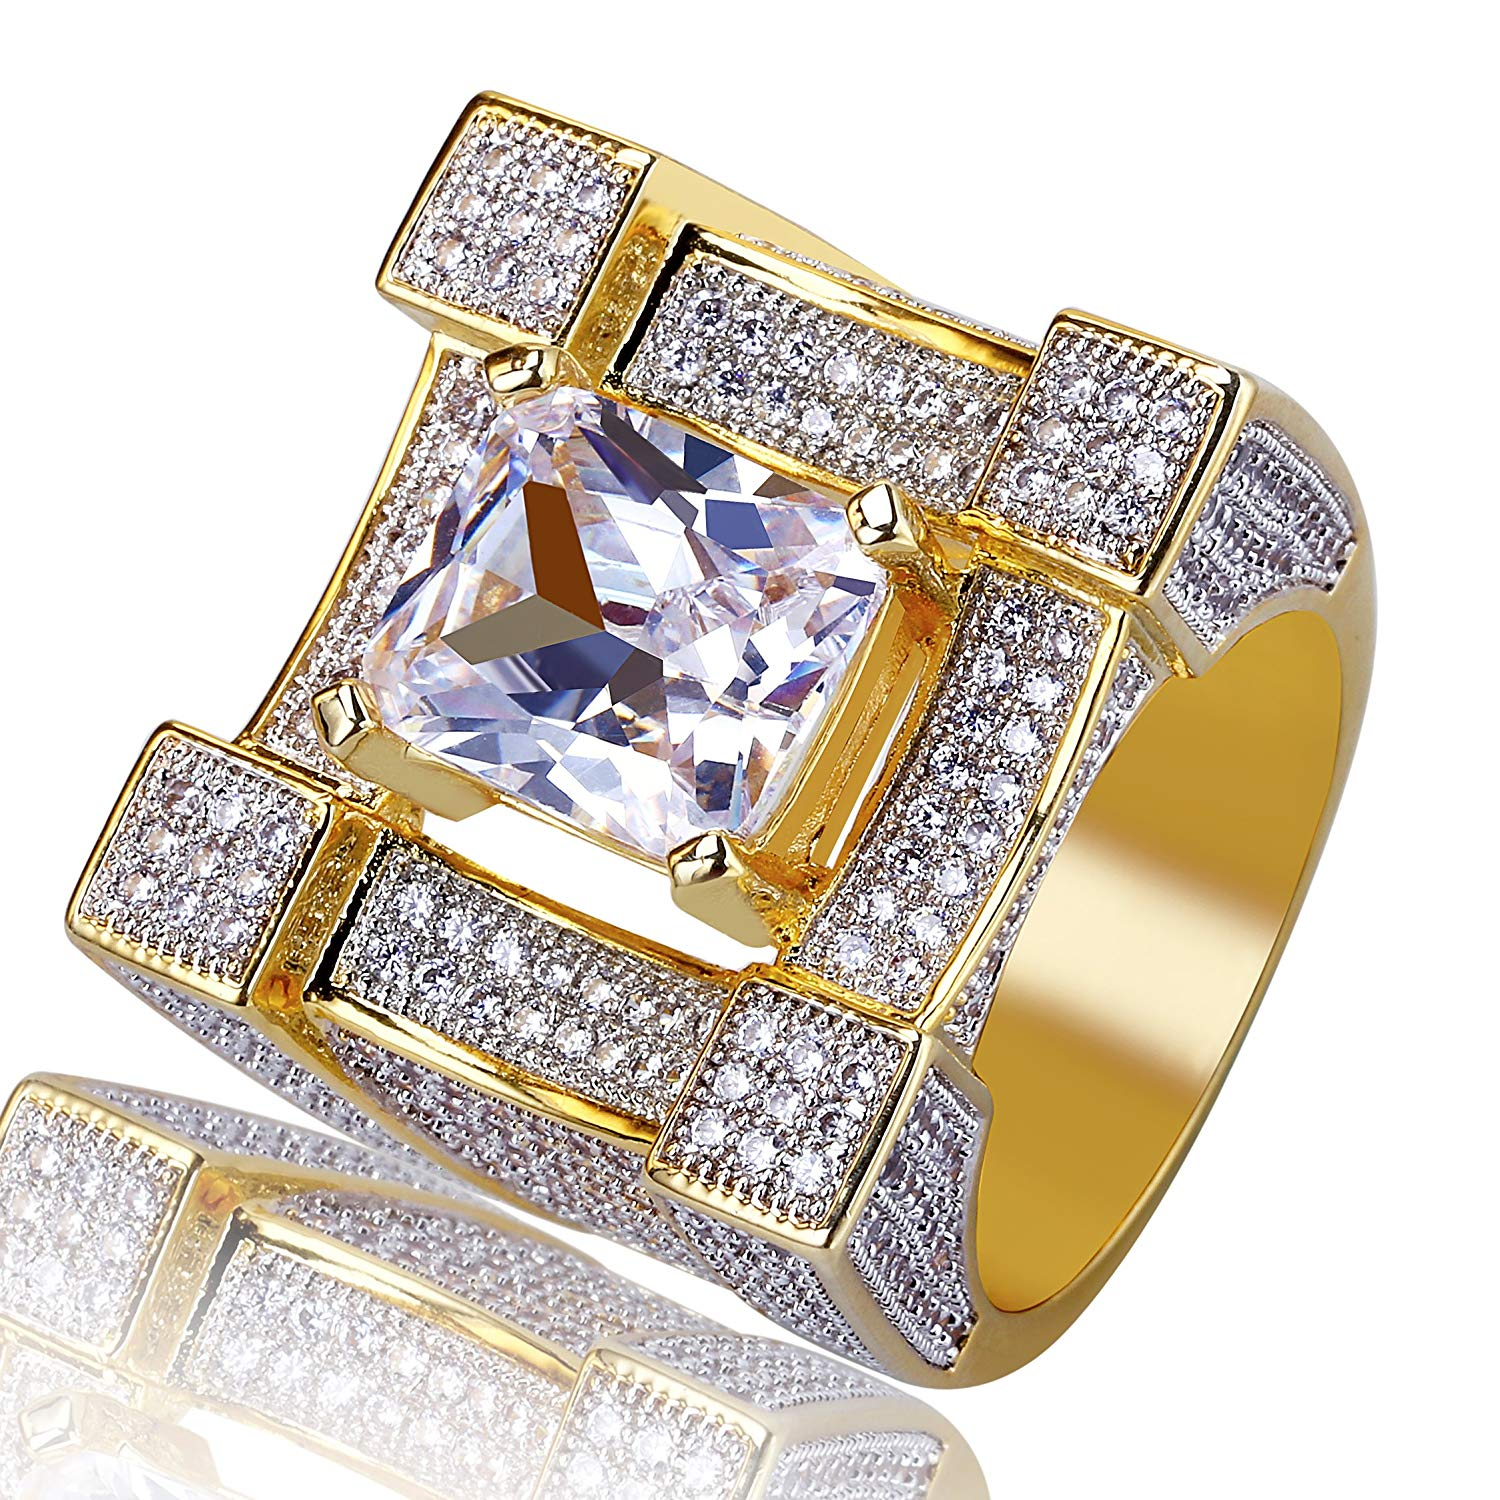 aa5202595ff6d5 Get Quotations · TOPGRILLZ Hip Hop 14K Gold Plated Iced Out CZ Simulated  Diamond Cushion Diamond Square Punky Ring